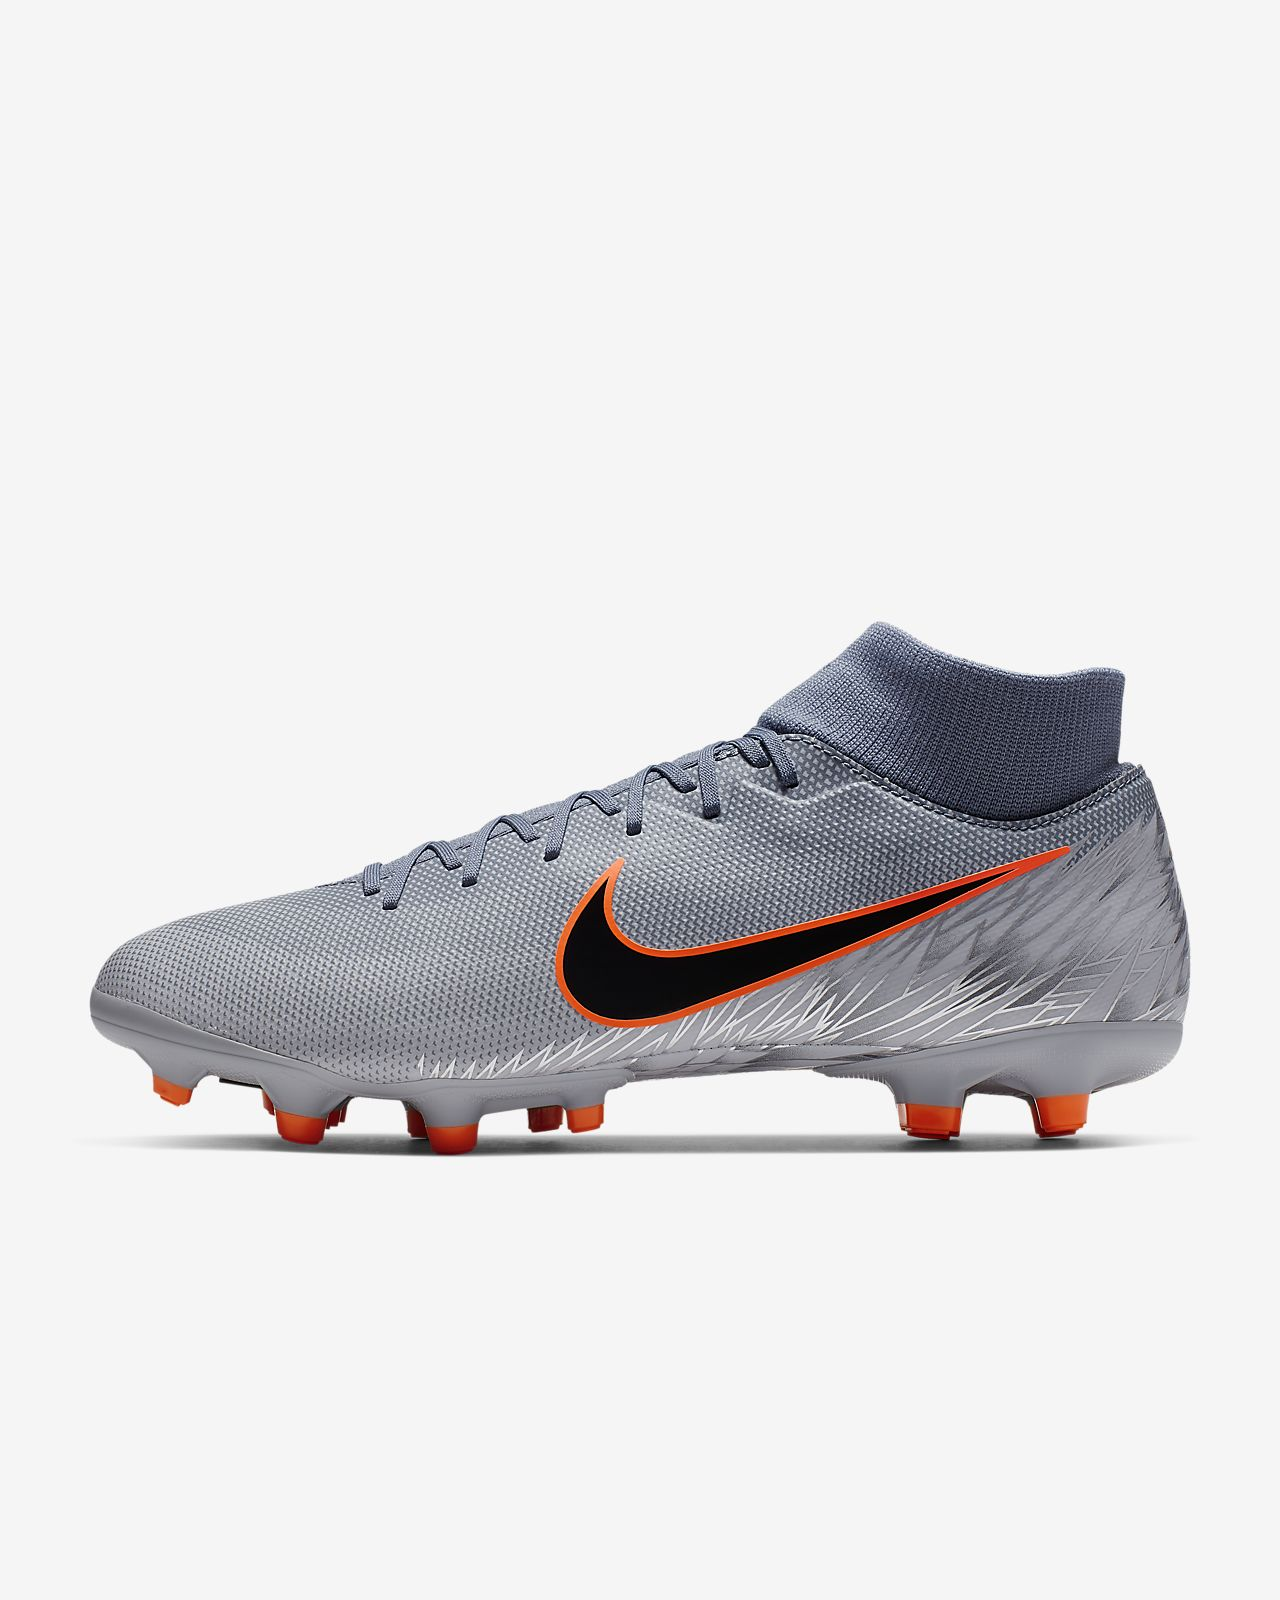 best authentic 56b30 9bd47 ... Nike Mercurial Superfly 6 Academy MG Botas de fútbol para múltiples  superficies